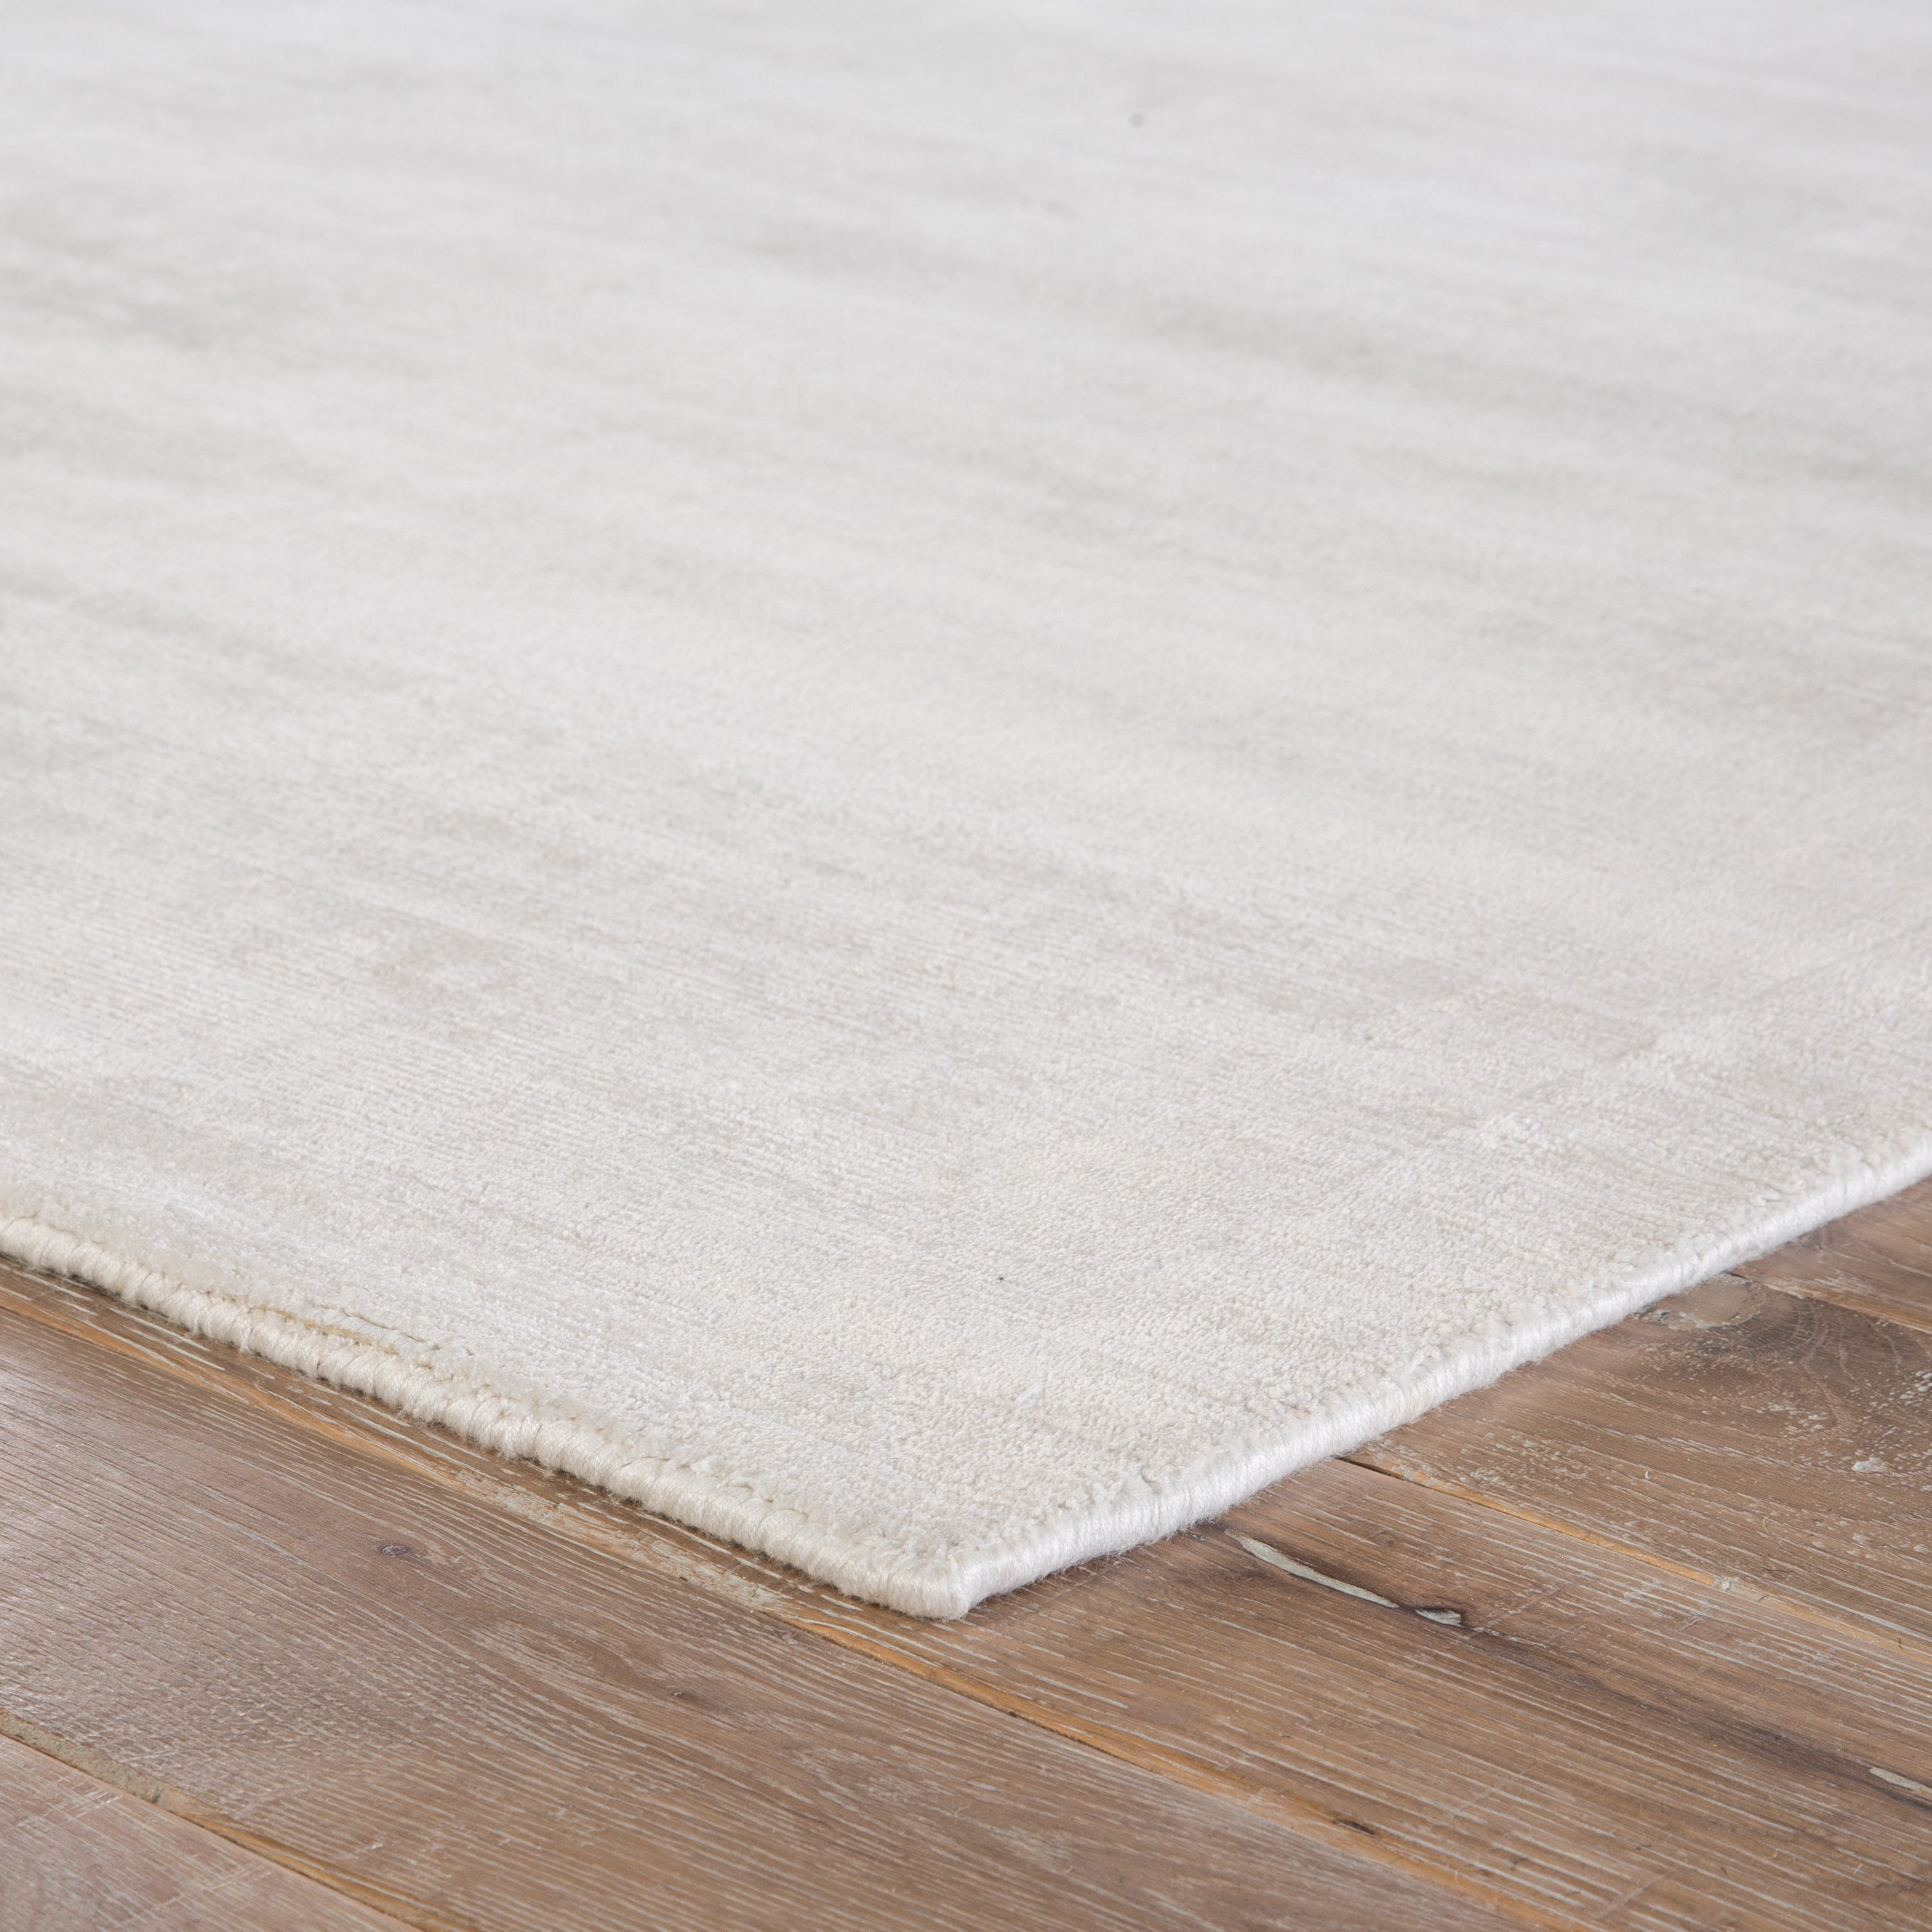 lizette handmade solid white area rug (' x ')  free shipping today overstockcom  . lizette handmade solid white area rug (' x ')  free shipping